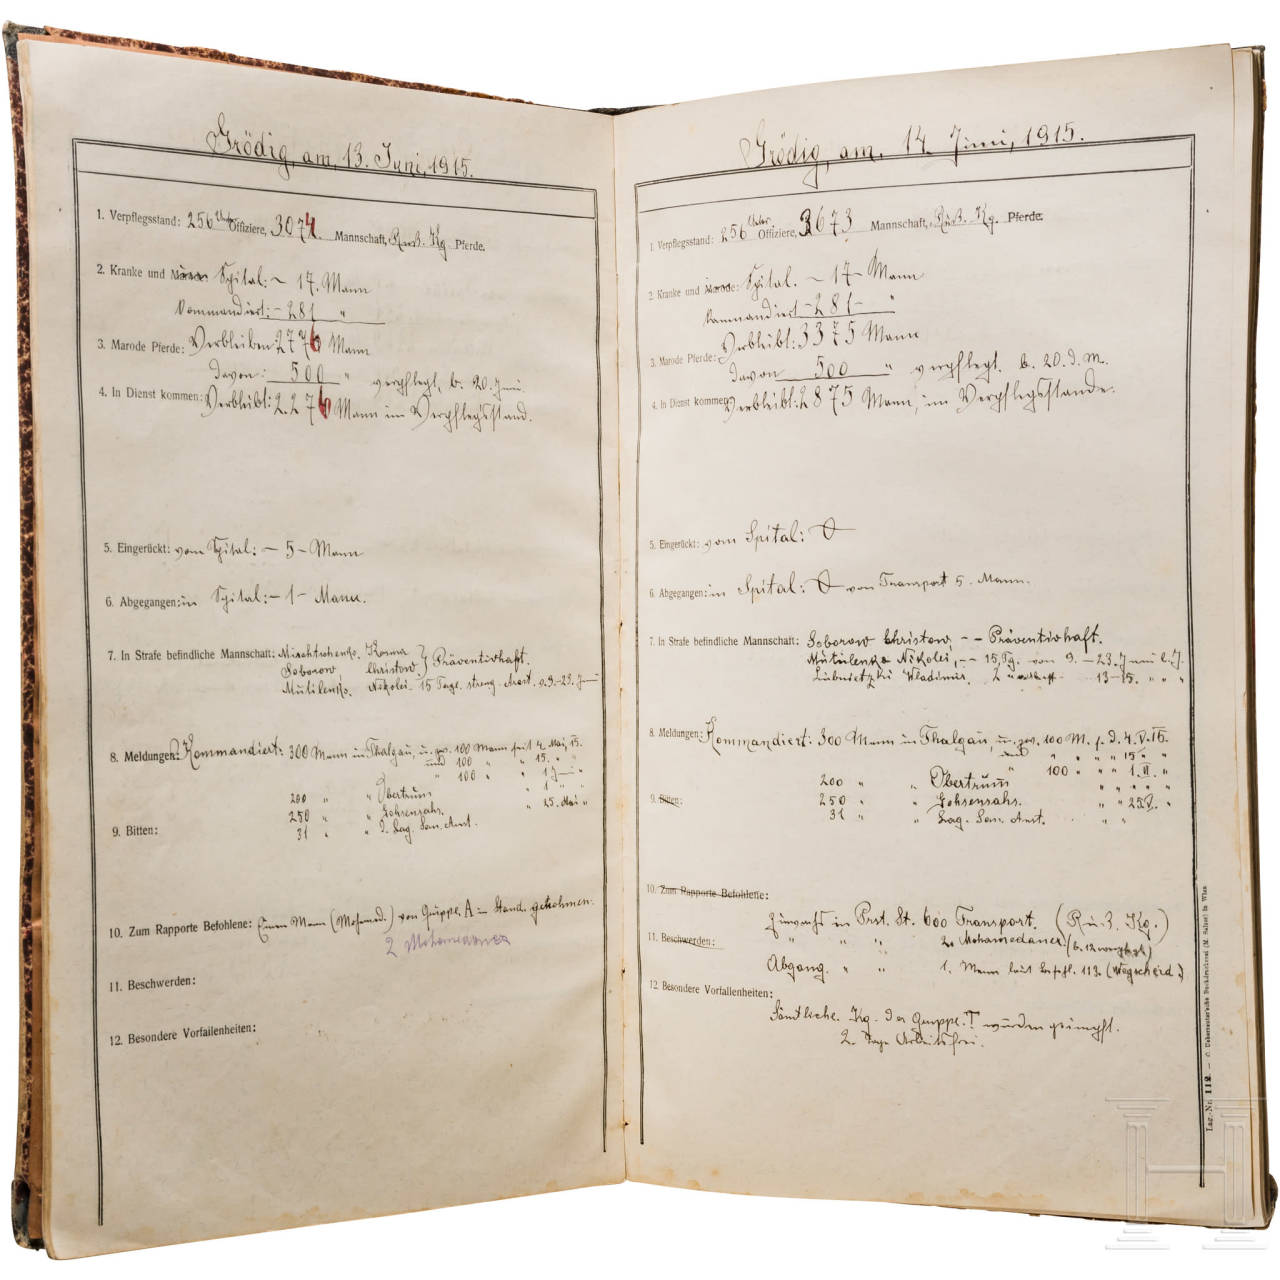 A report book of the POW camp Grödig from 7.7. to 22.11.1915